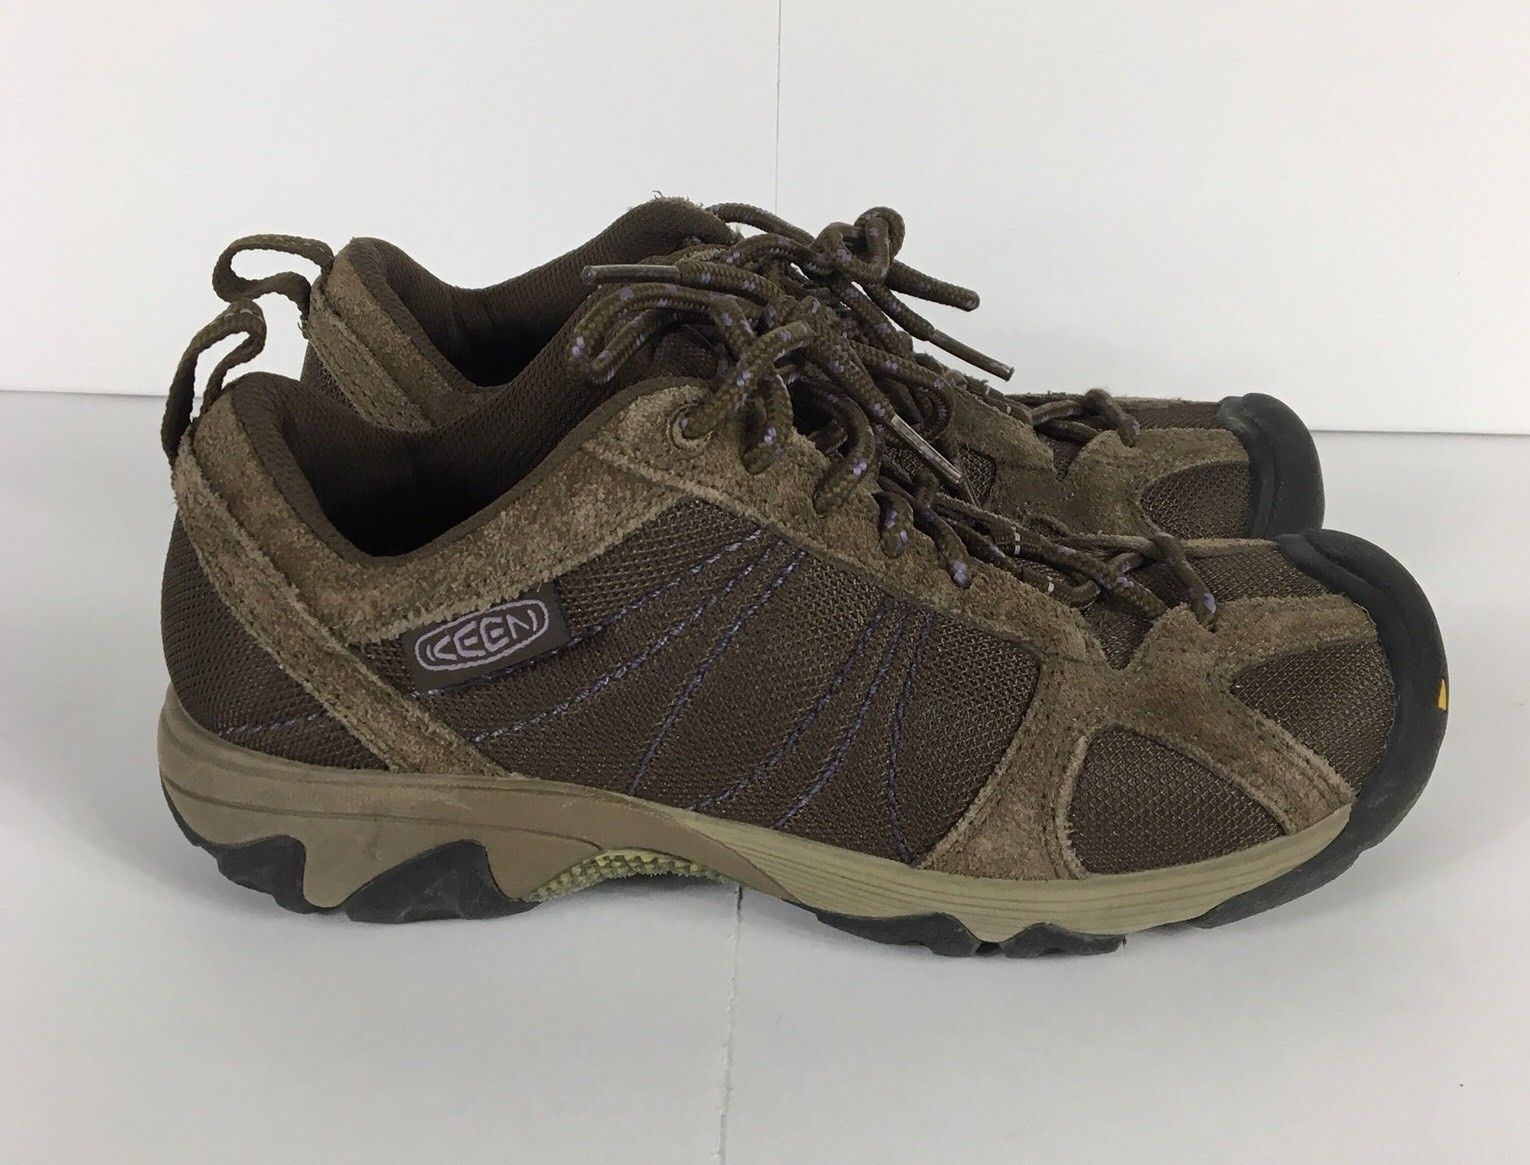 d20ff7c1411d Keen Womens Ambler Mesh Hiking Shoes Brown and 50 similar items